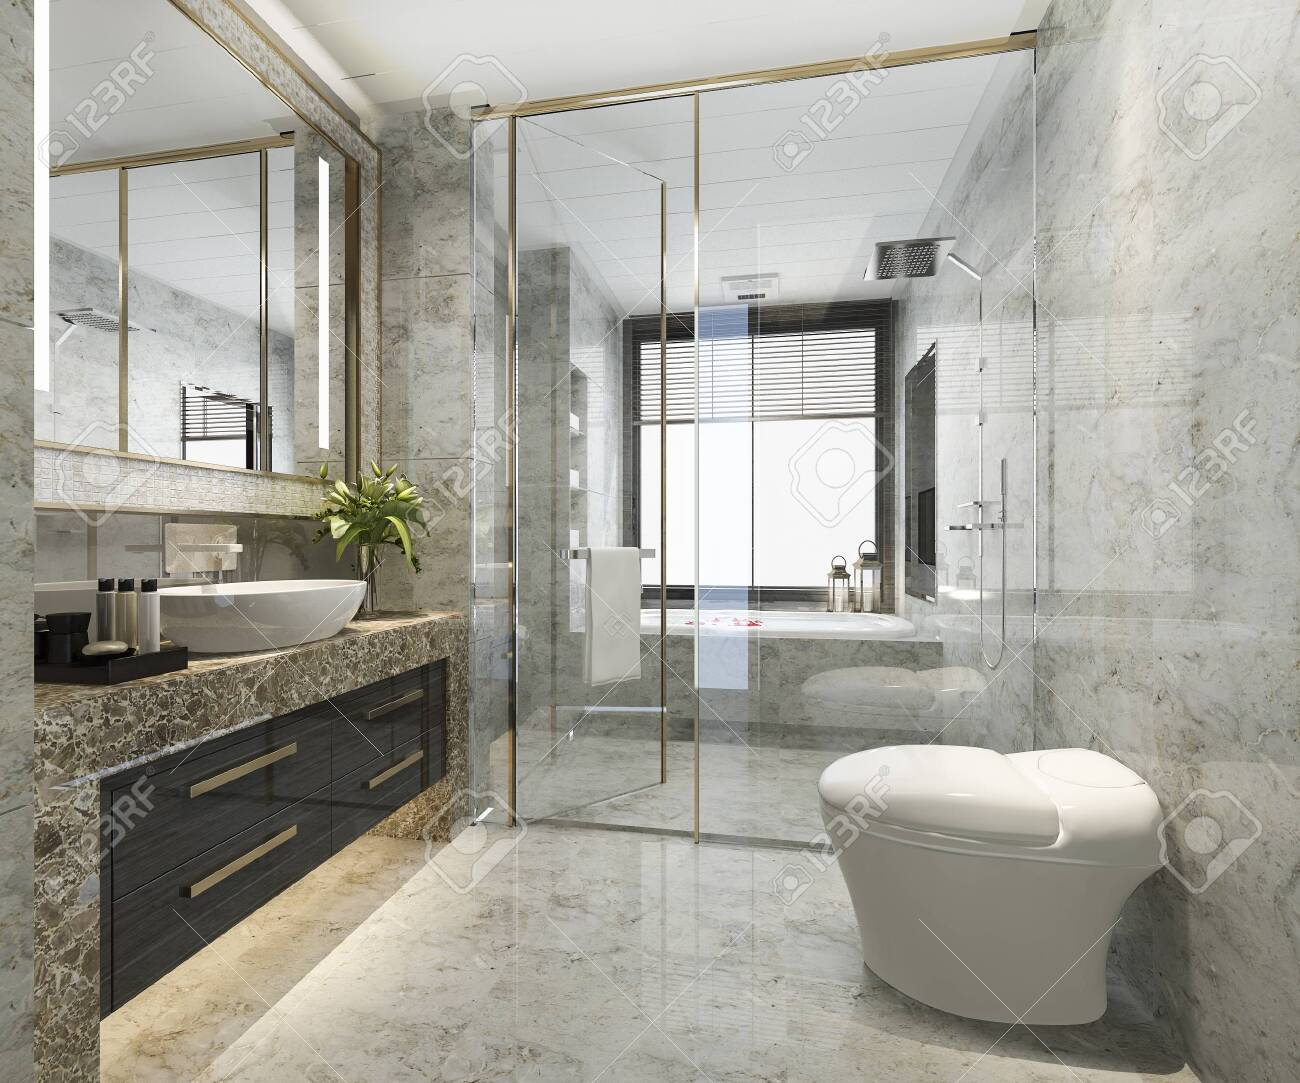 3d rendering classic modern bathroom with luxury tile decor - 135670293